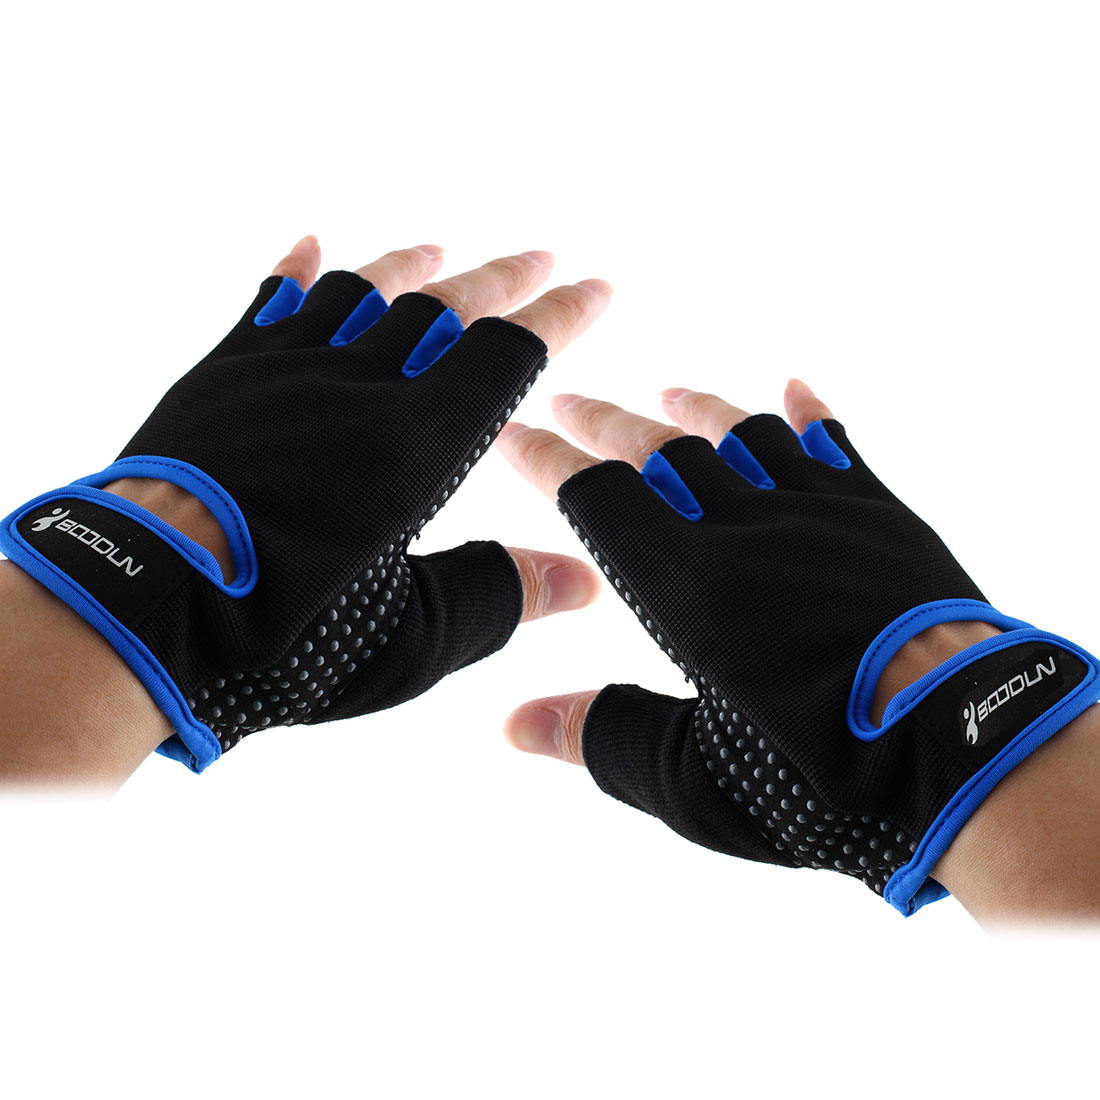 BOODUN Authorized Adult Unisex Spandex Adjustable Sports Training Workout Mittens Fitness Gloves Blue M Pair